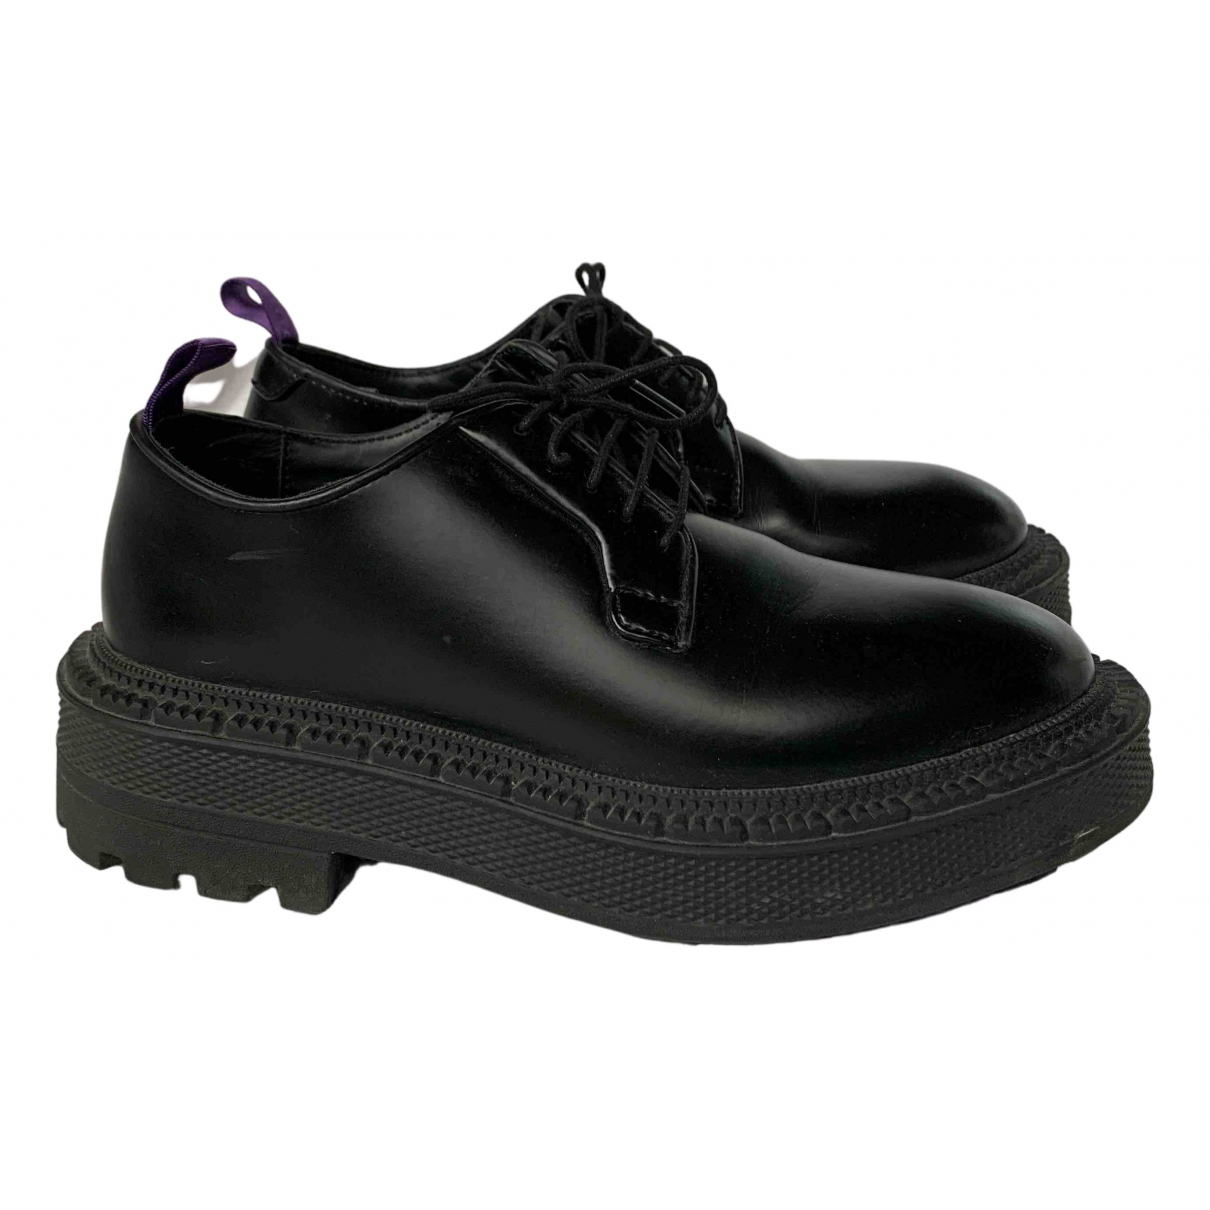 Eytys N Black Leather Lace ups for Women 3.5 UK